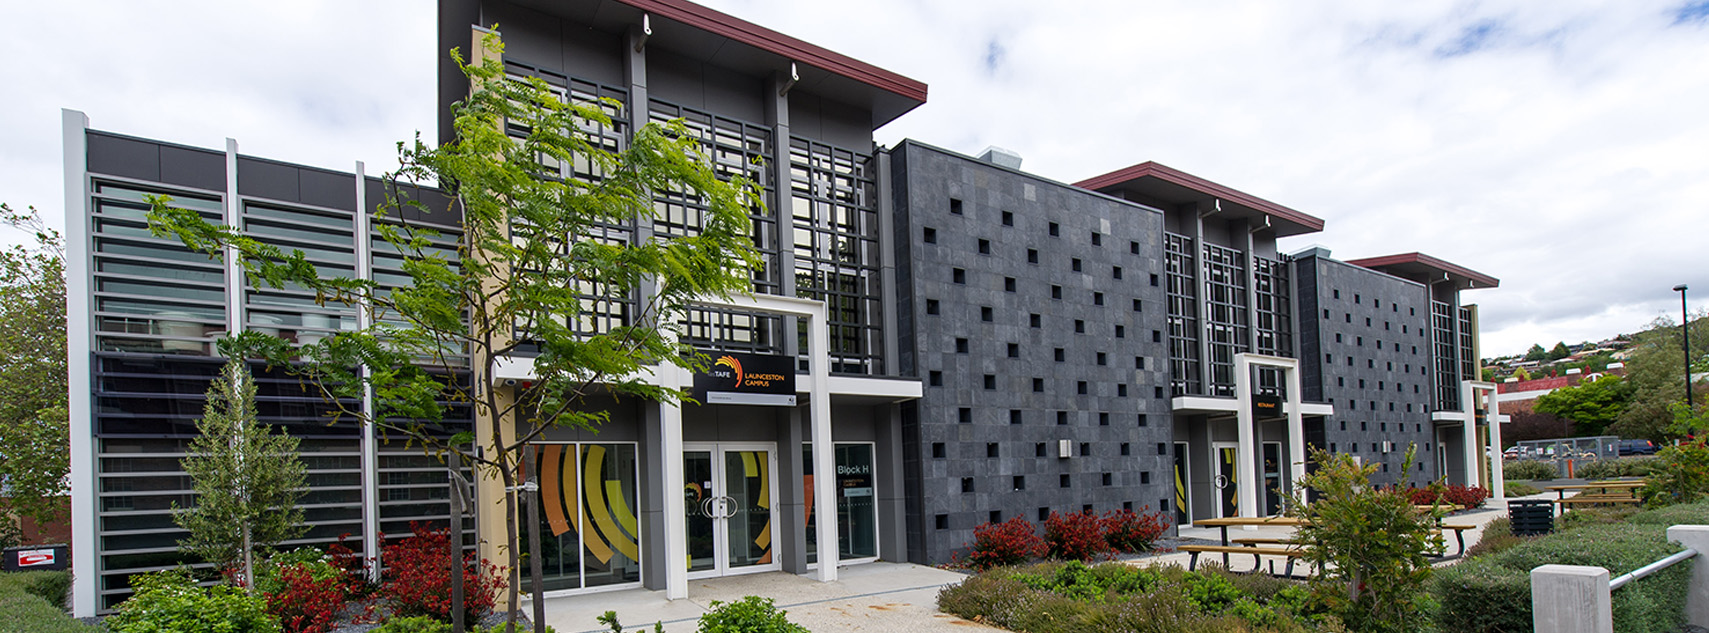 TAFE NSW (New South Wales)